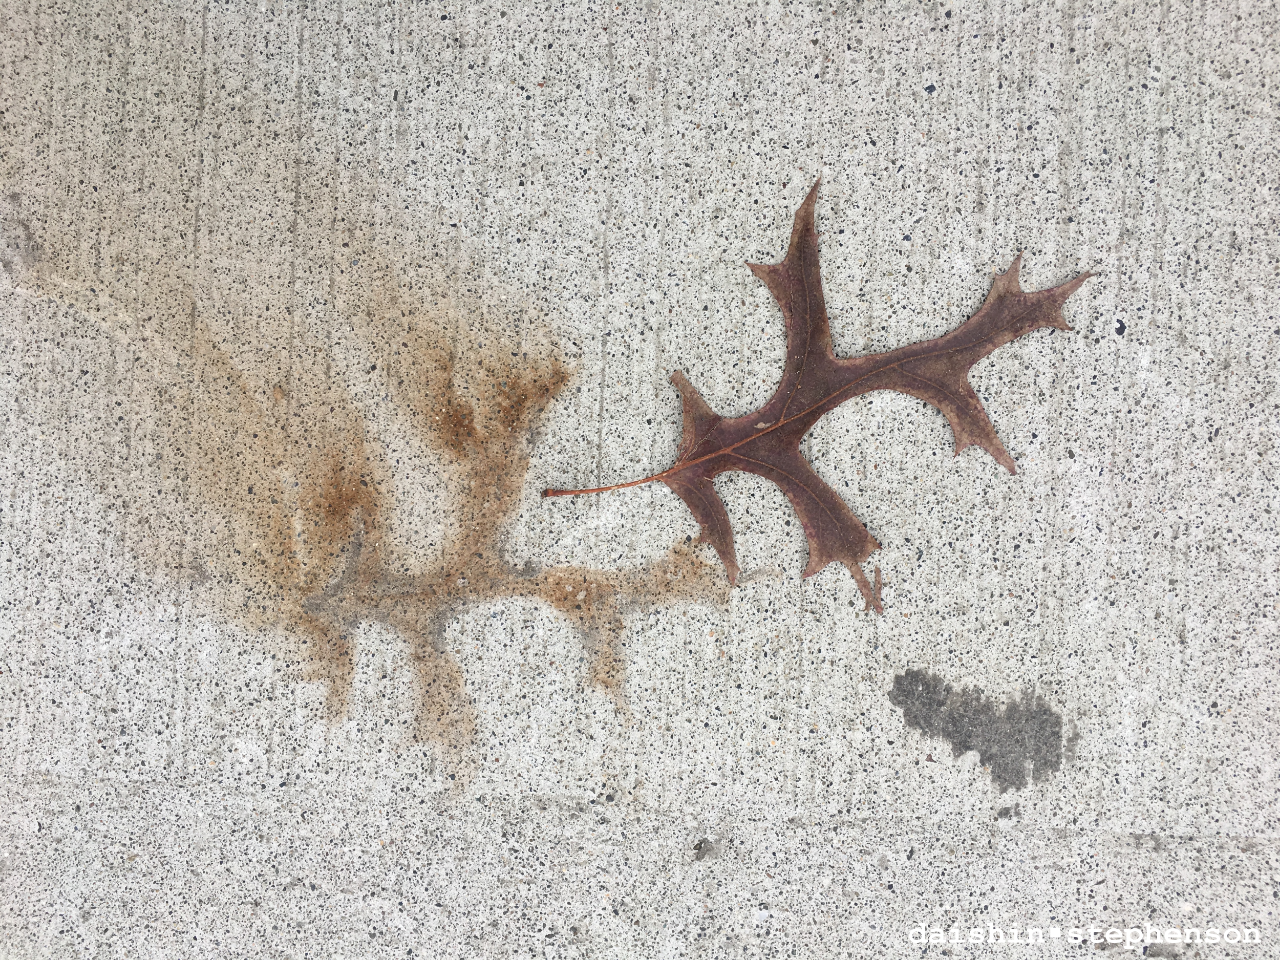 dry leaf beside its stained imprint on sidewalk